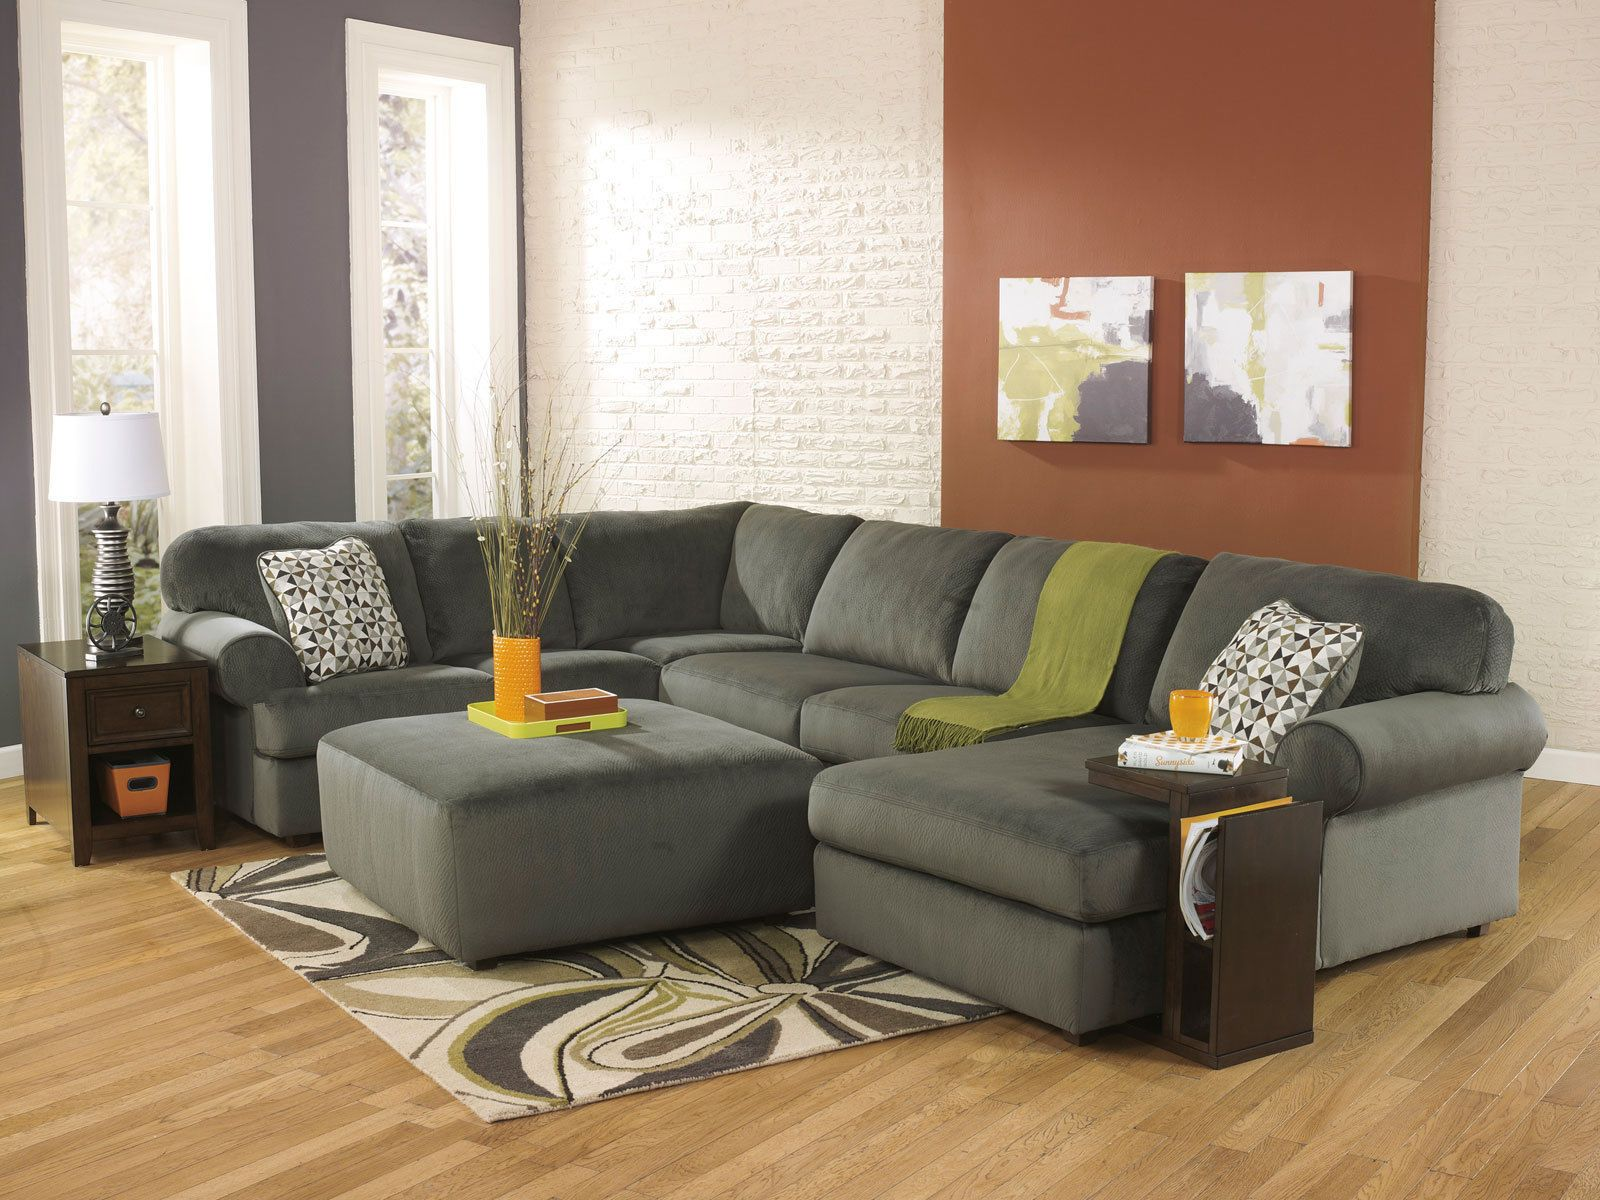 Sonata large modern pewter microfiber living room sofa couch sectional set new sofas